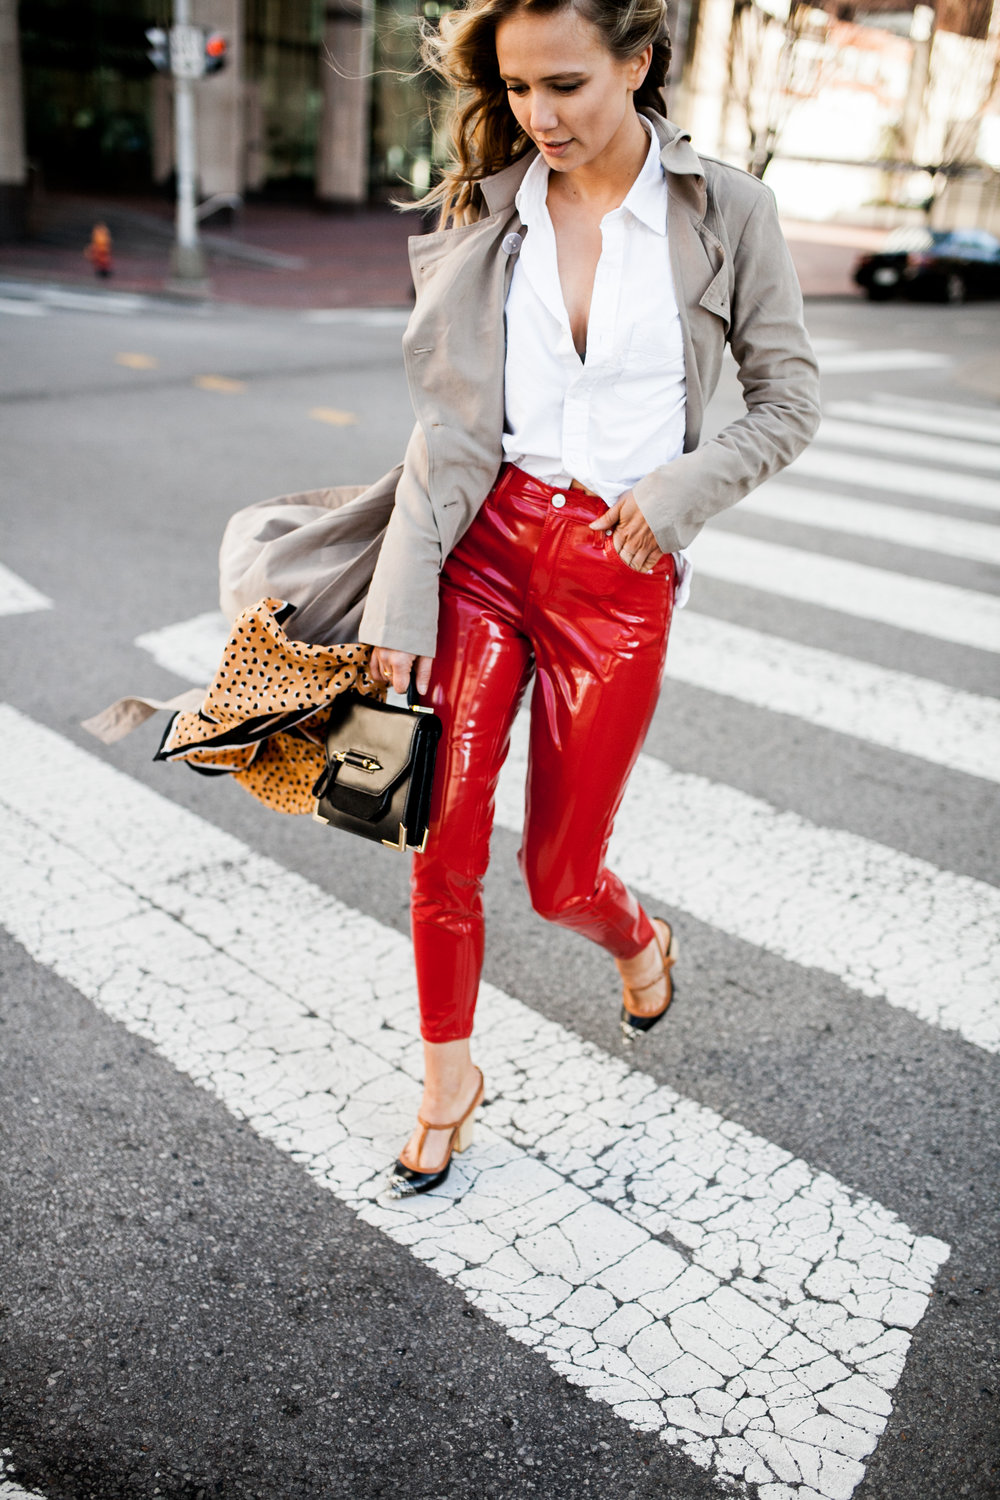 trench-coat-jcrew-white-button-down-red-vinyl-topshop-pants-coach-court-shoes-mackage-bag-hm-printed-scarf.jpg